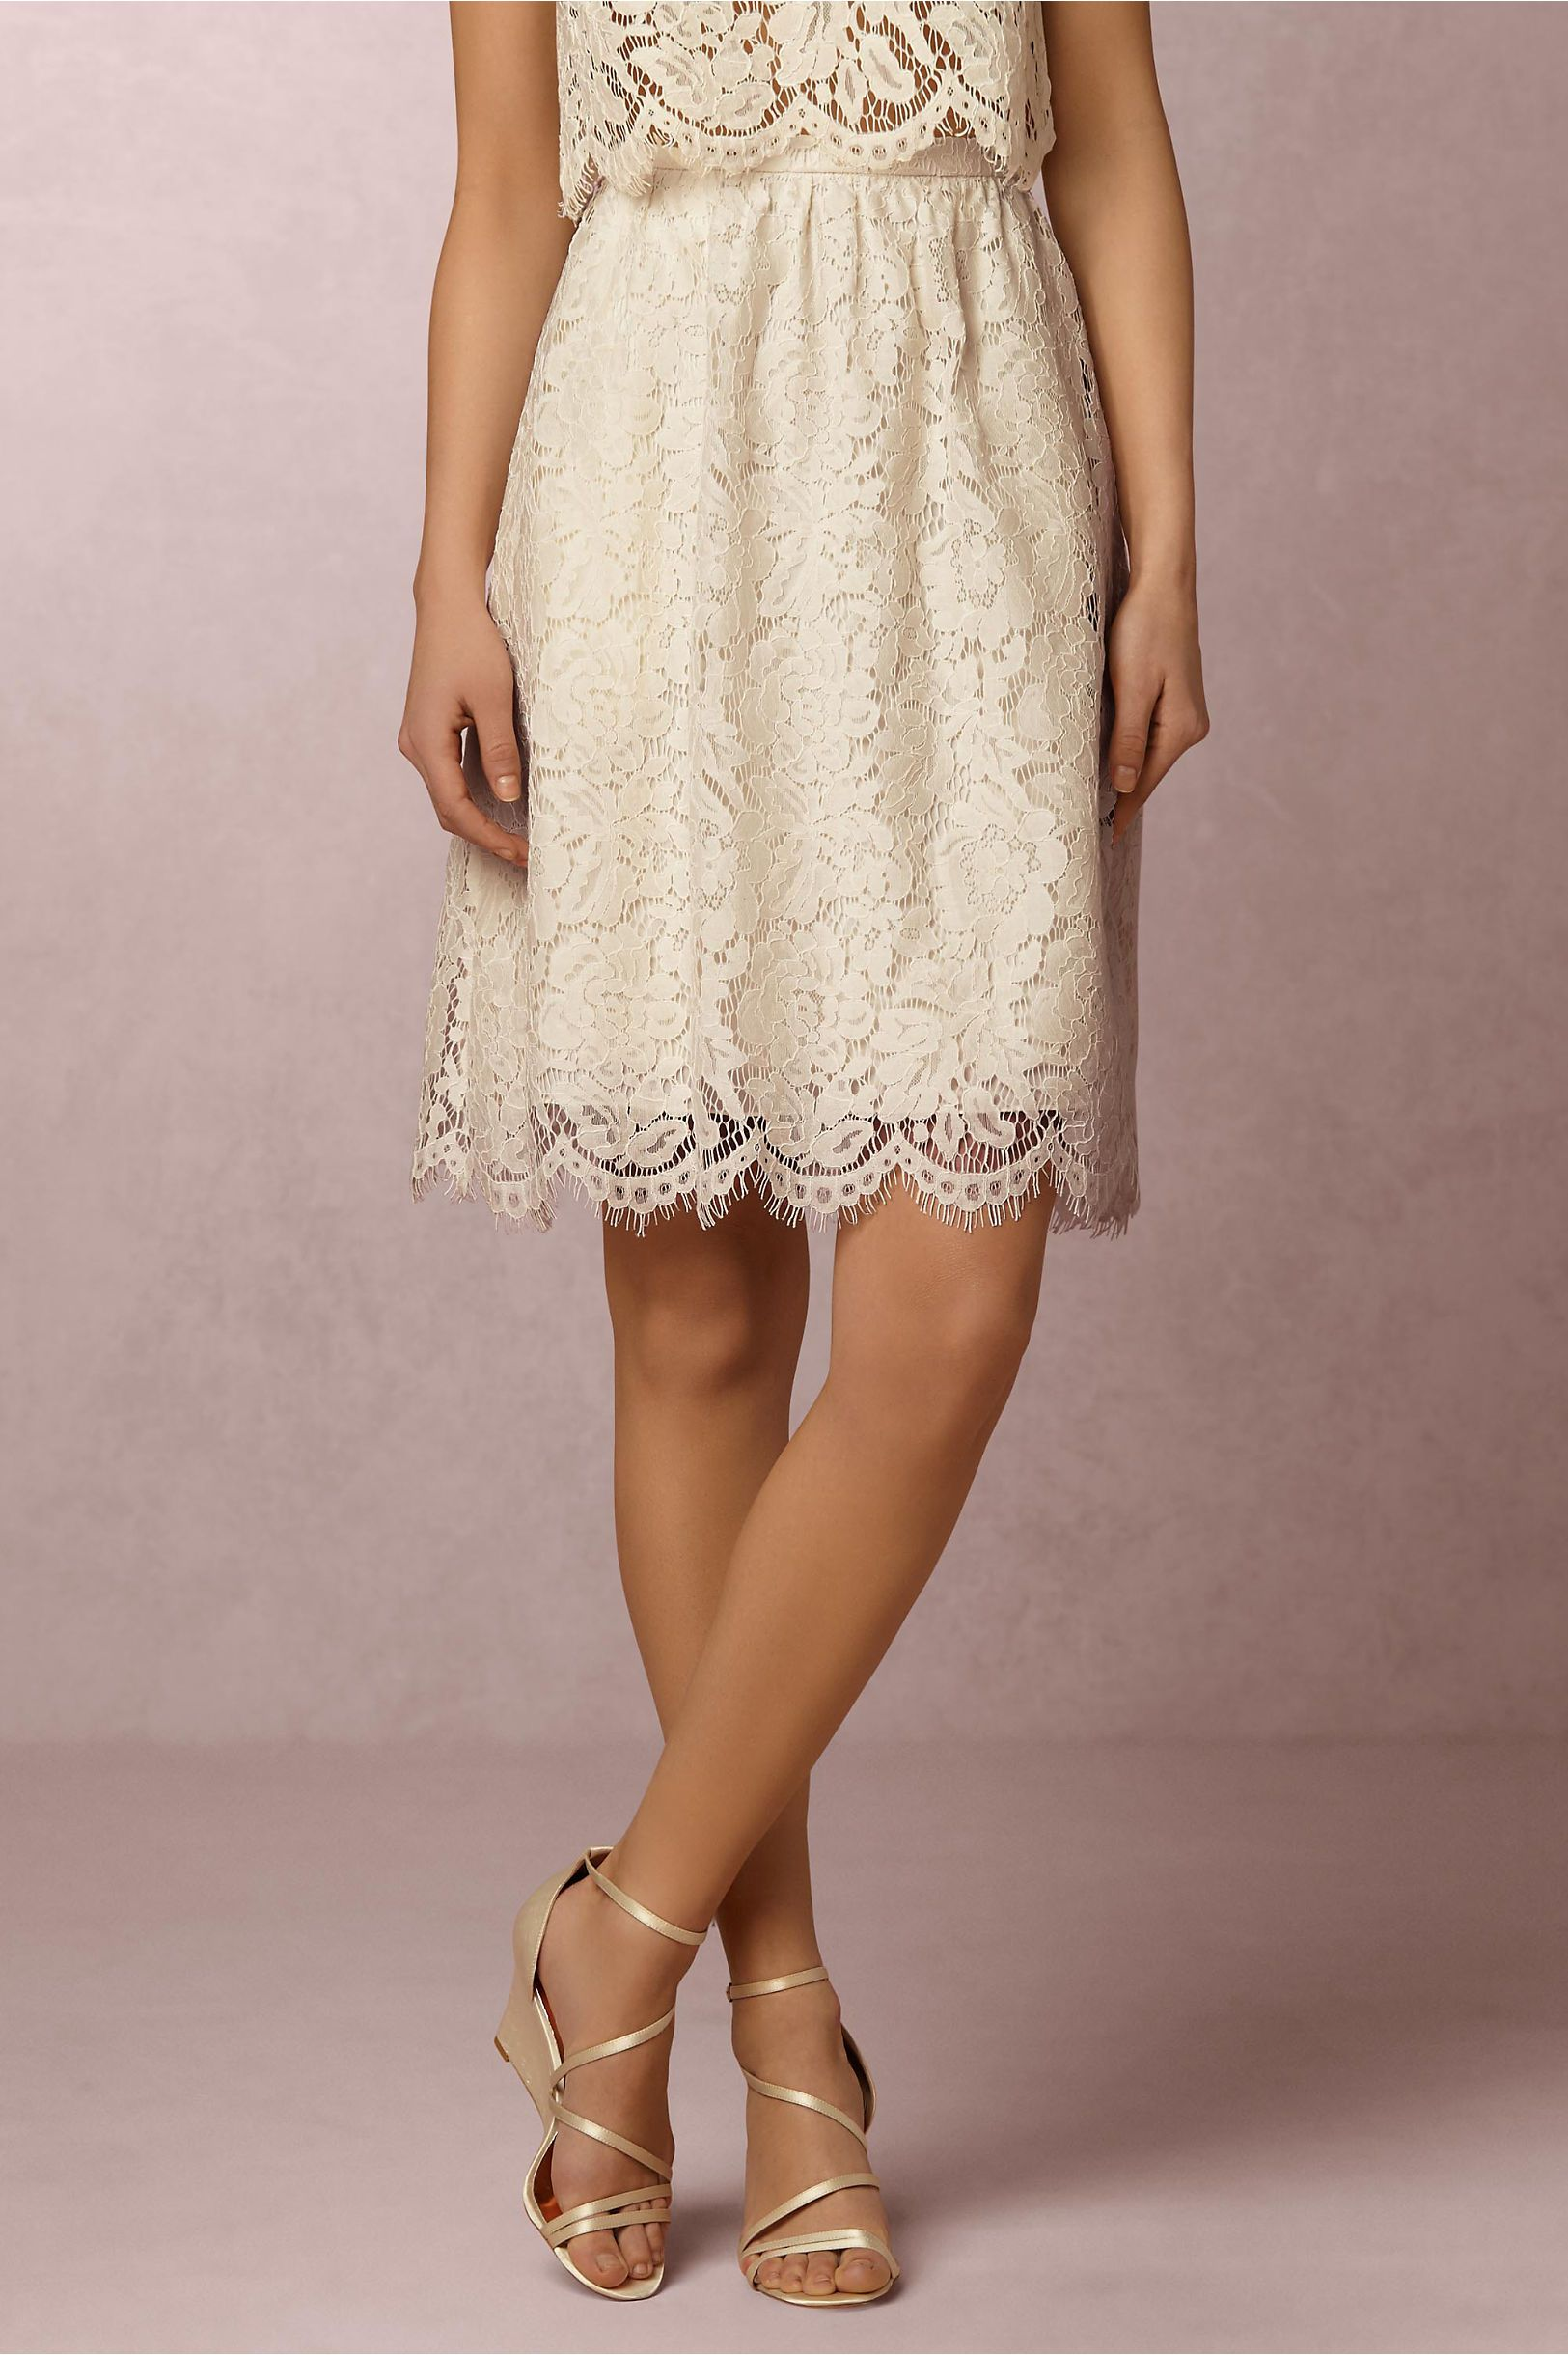 Bhldn lydia lace skirt in bridesmaids bridesmaid dresses separates bhldn lydia lace skirt in bridesmaids bridesmaid dresses separates at bhldn ombrellifo Choice Image